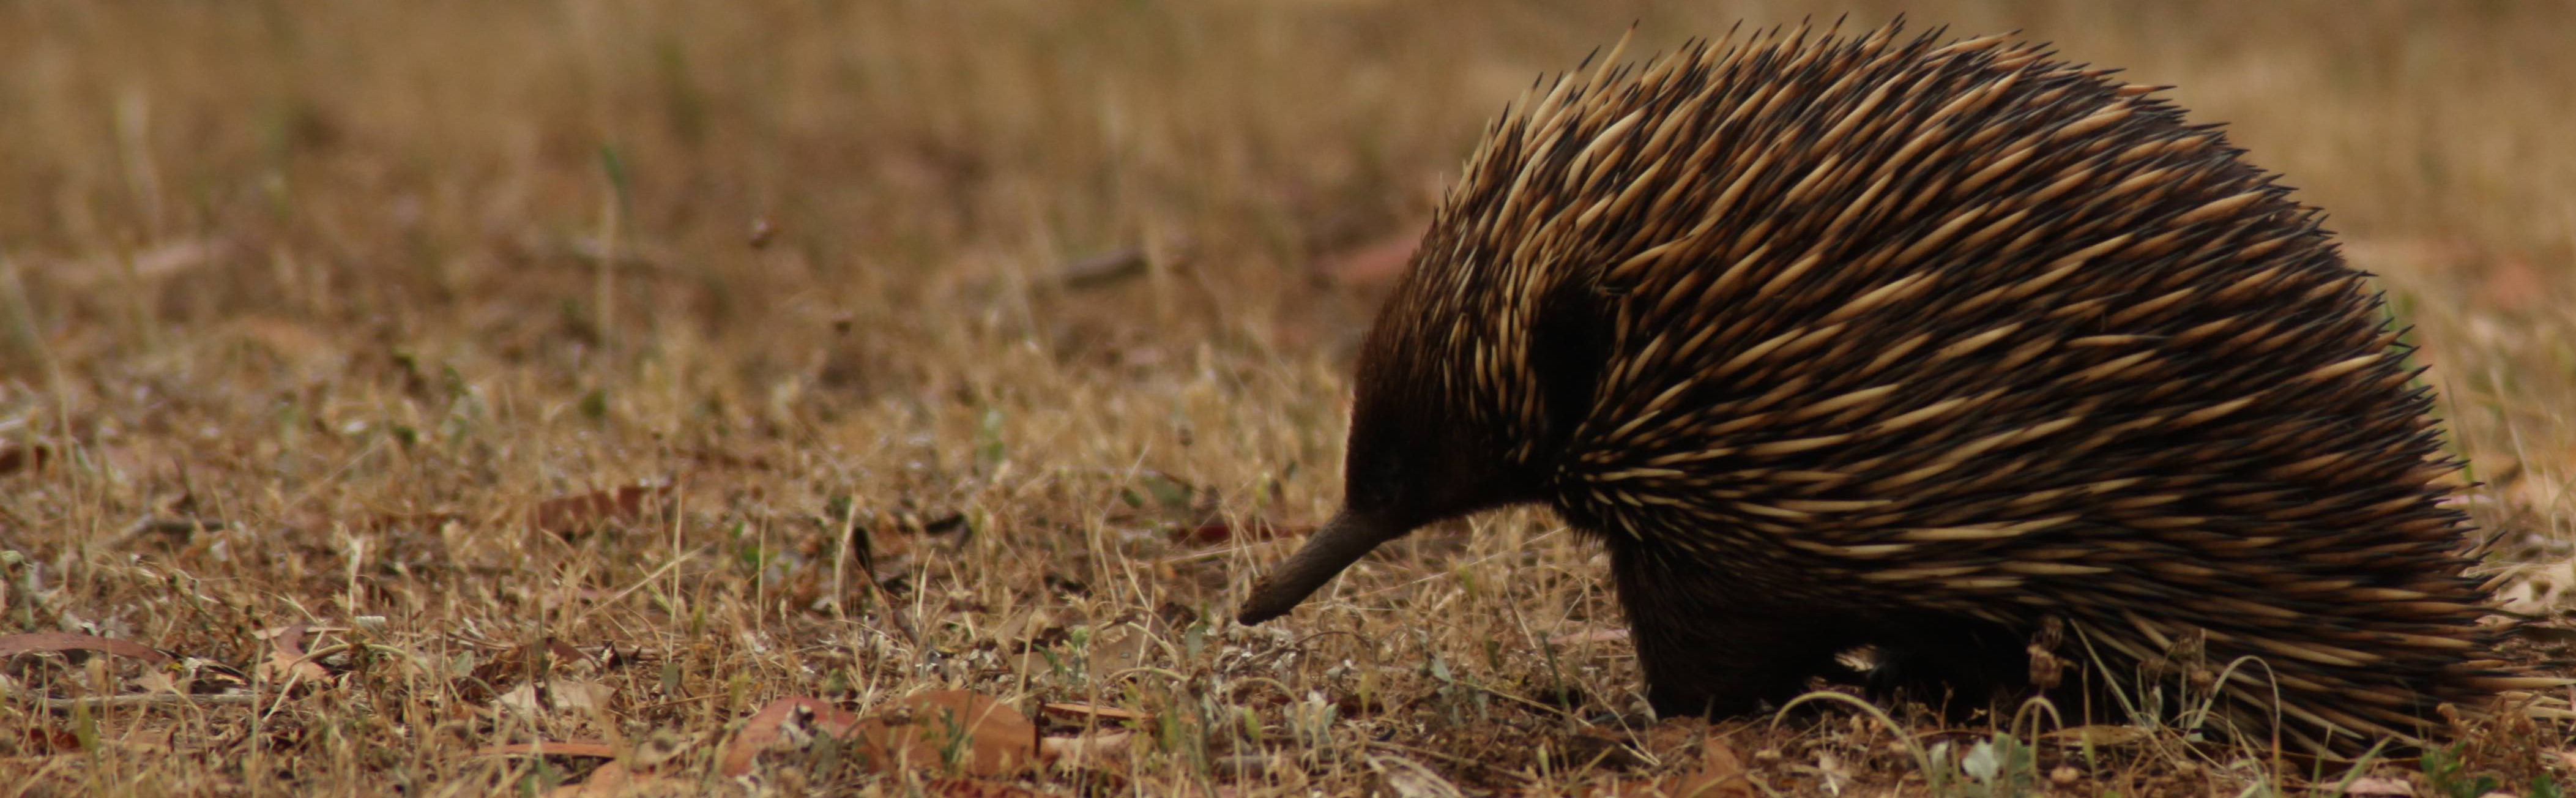 What is an Echidna?